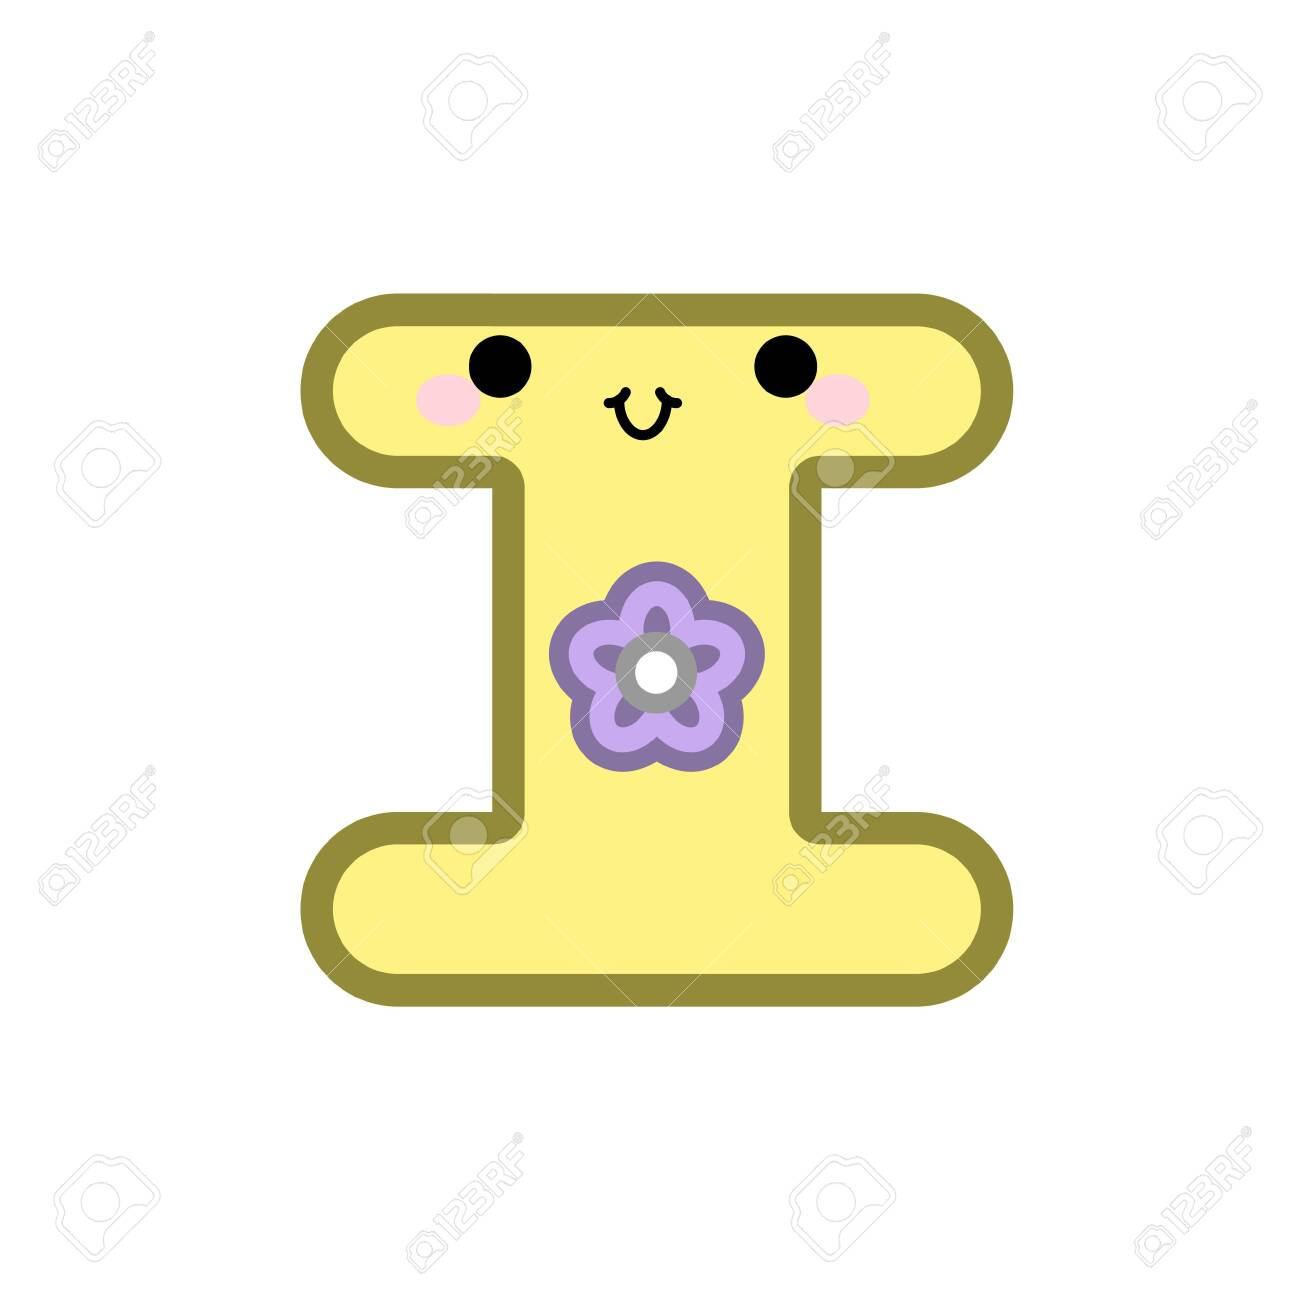 Cute Cartoon Letter I Smiling Face With Eyes And Mouth On White